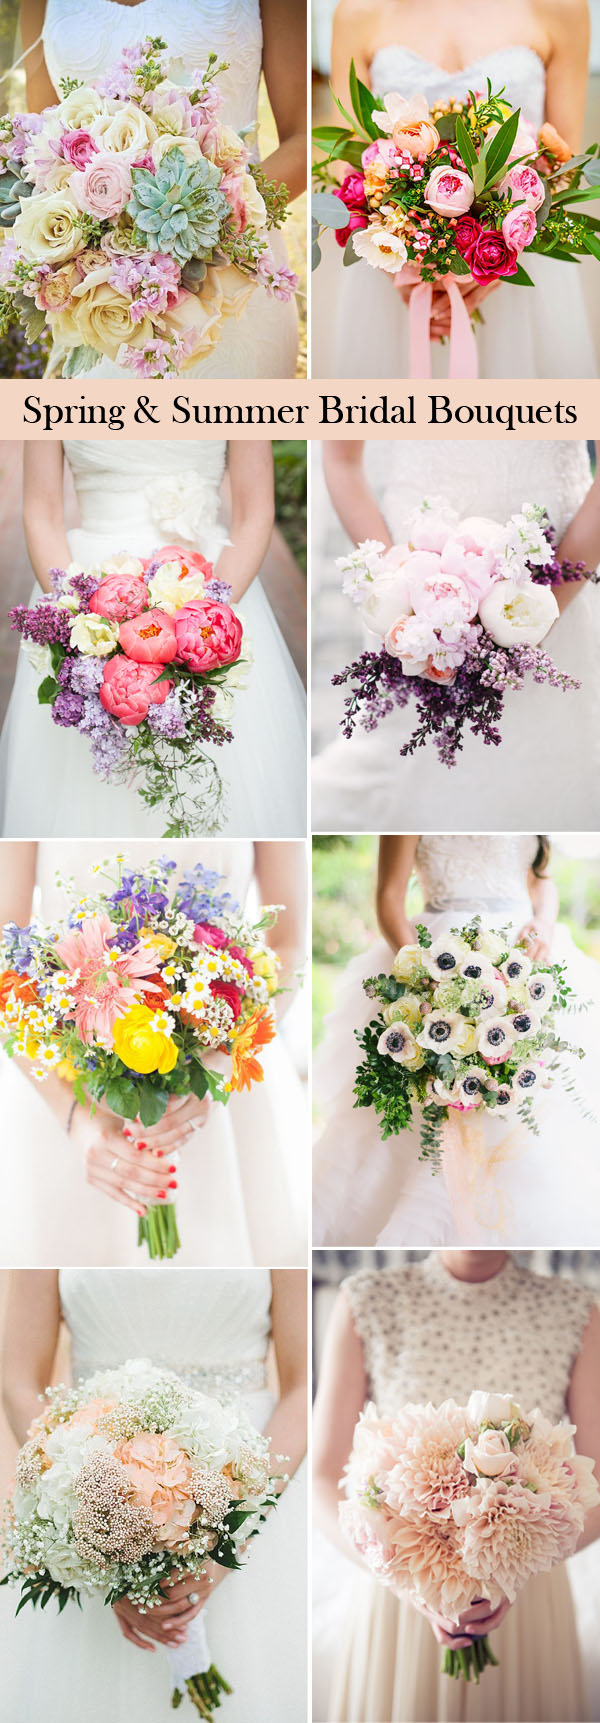 25 swoon worthy wedding bouquets ideas for spring summer brides